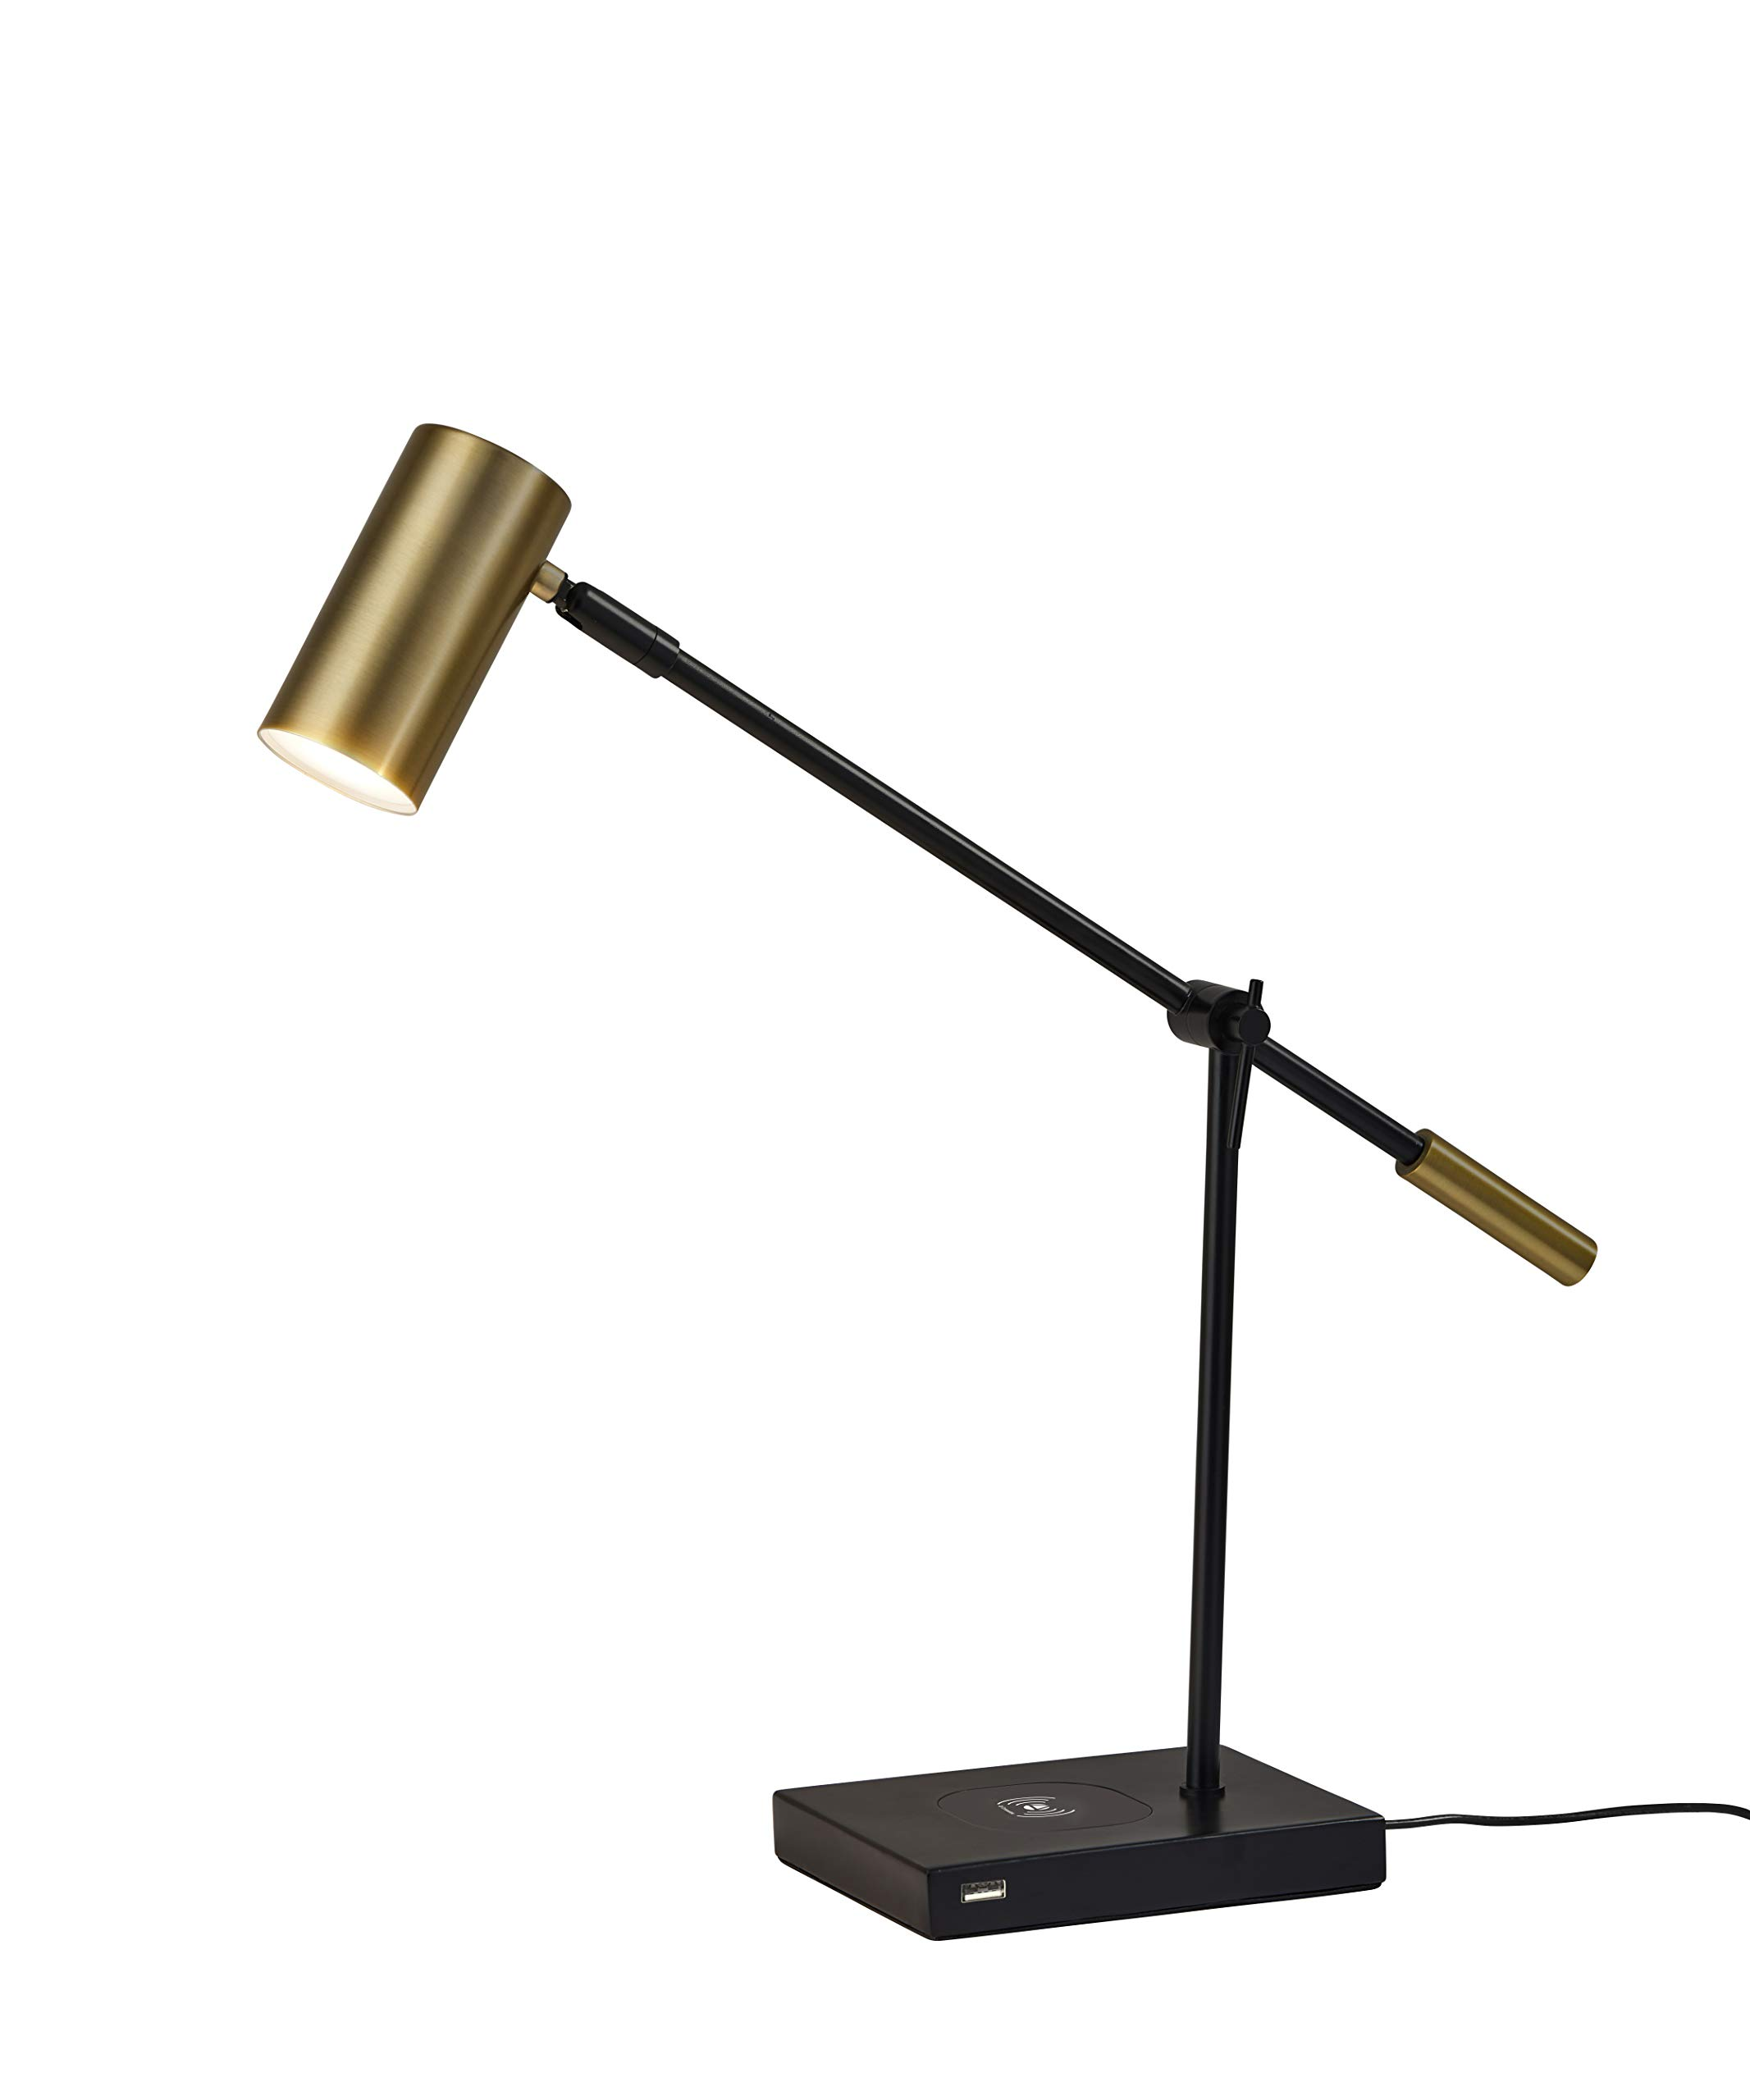 Adesso 4217-01 ColletteLED Desk Lamp WirelessCharging, 7W LED, 5W QI,USB Port, Indoor Lighting Lamps by Adesso